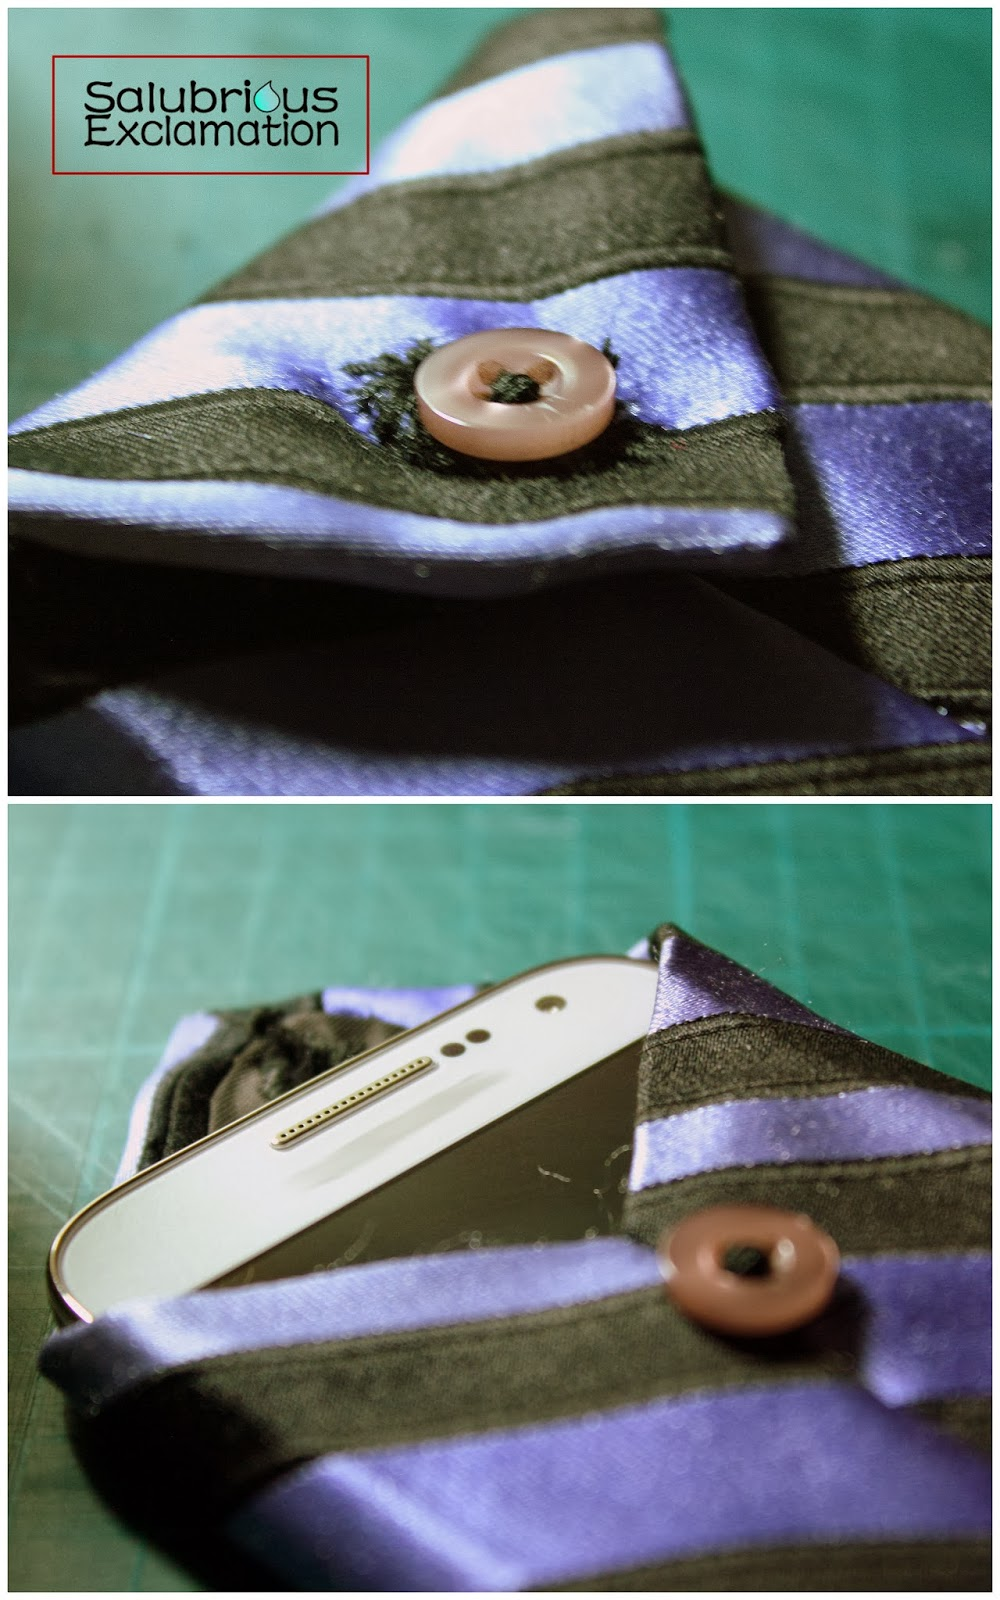 Turn A Necktie Into A Phone Case